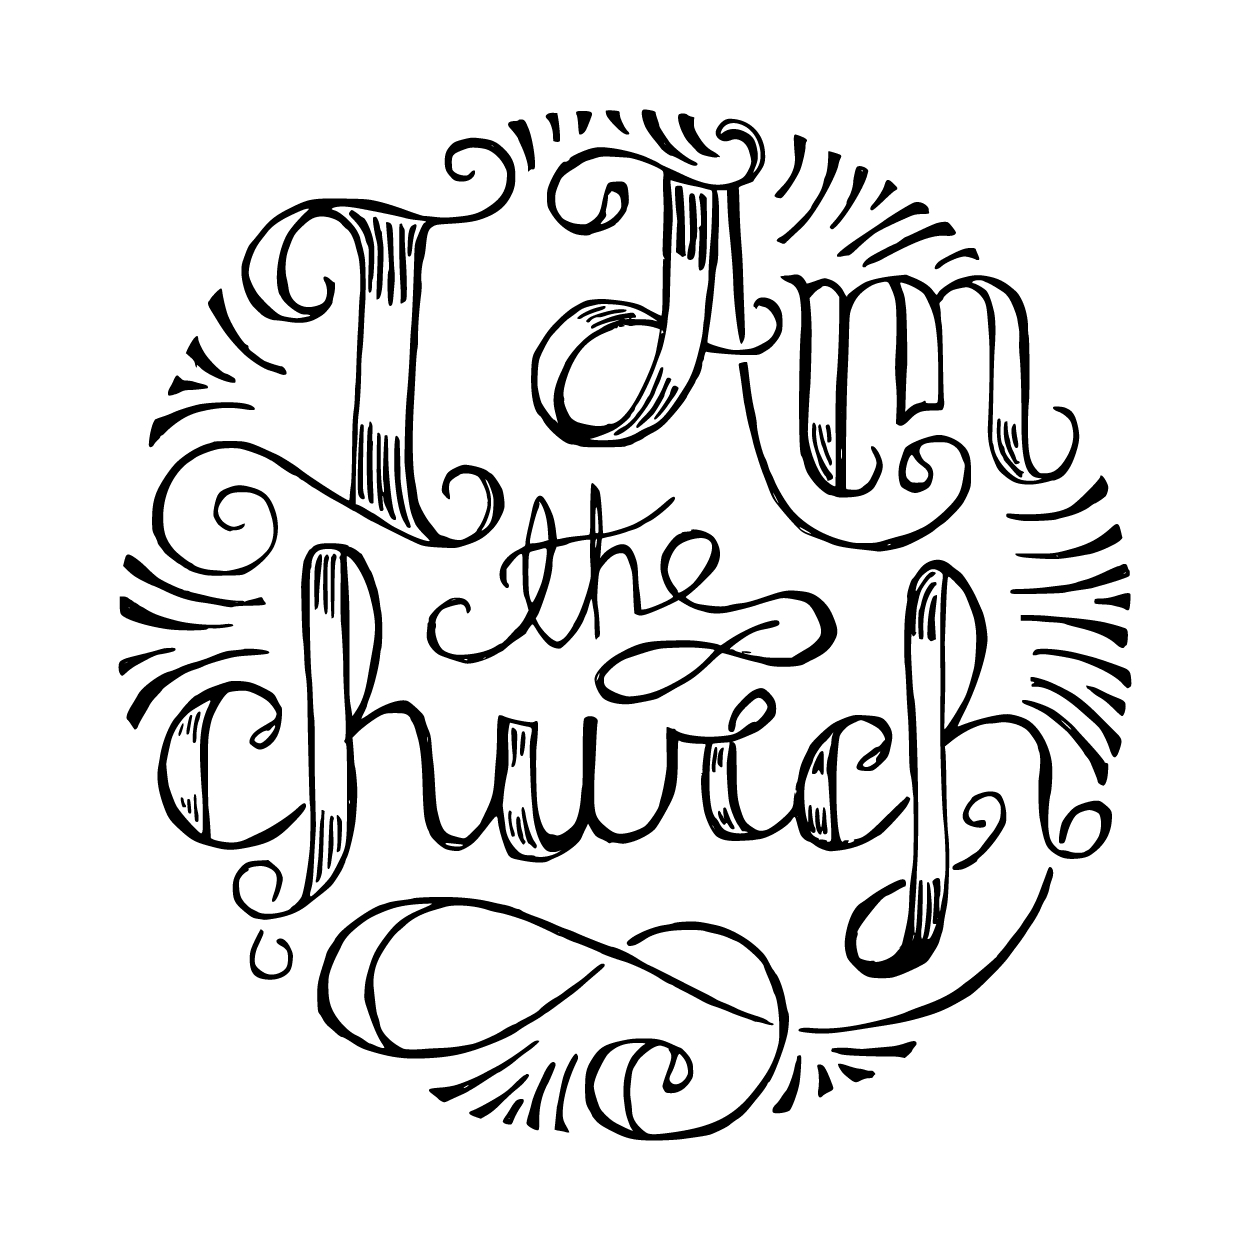 I Am the Church : by @kylesteed